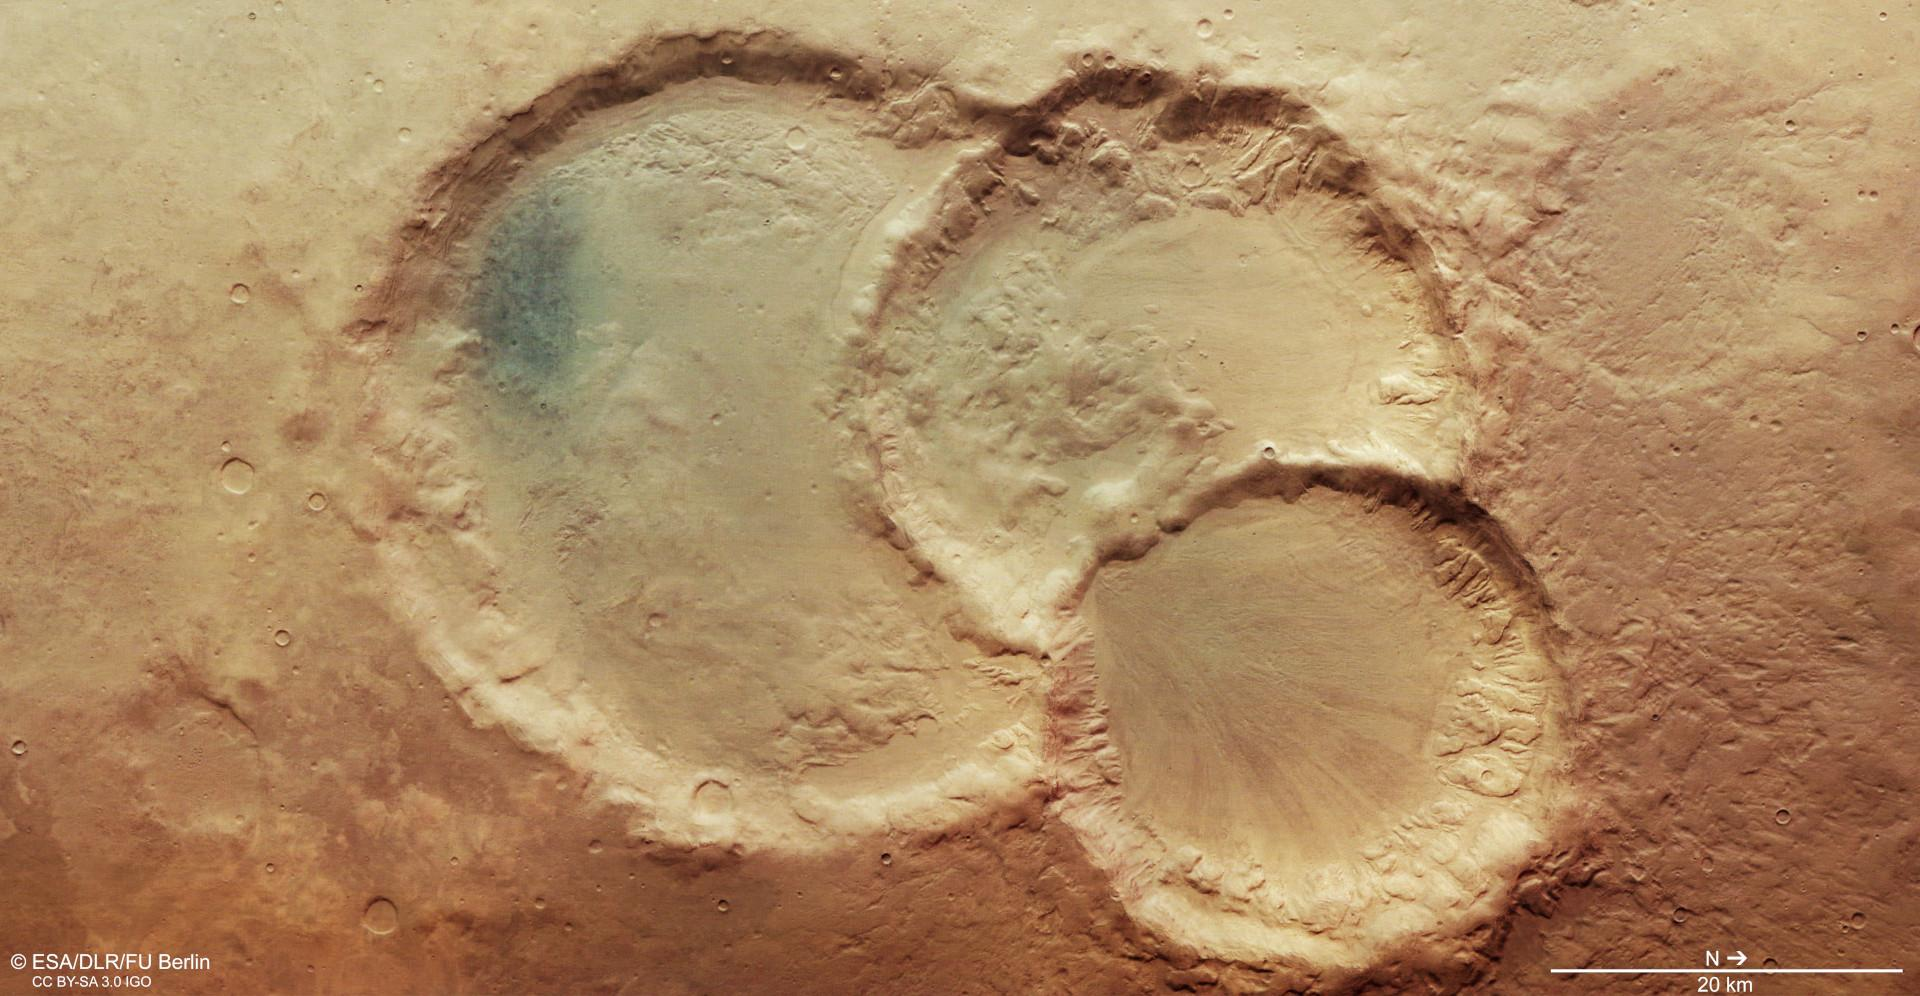 View of a crater triplet in the Noachis Terra region on Mars